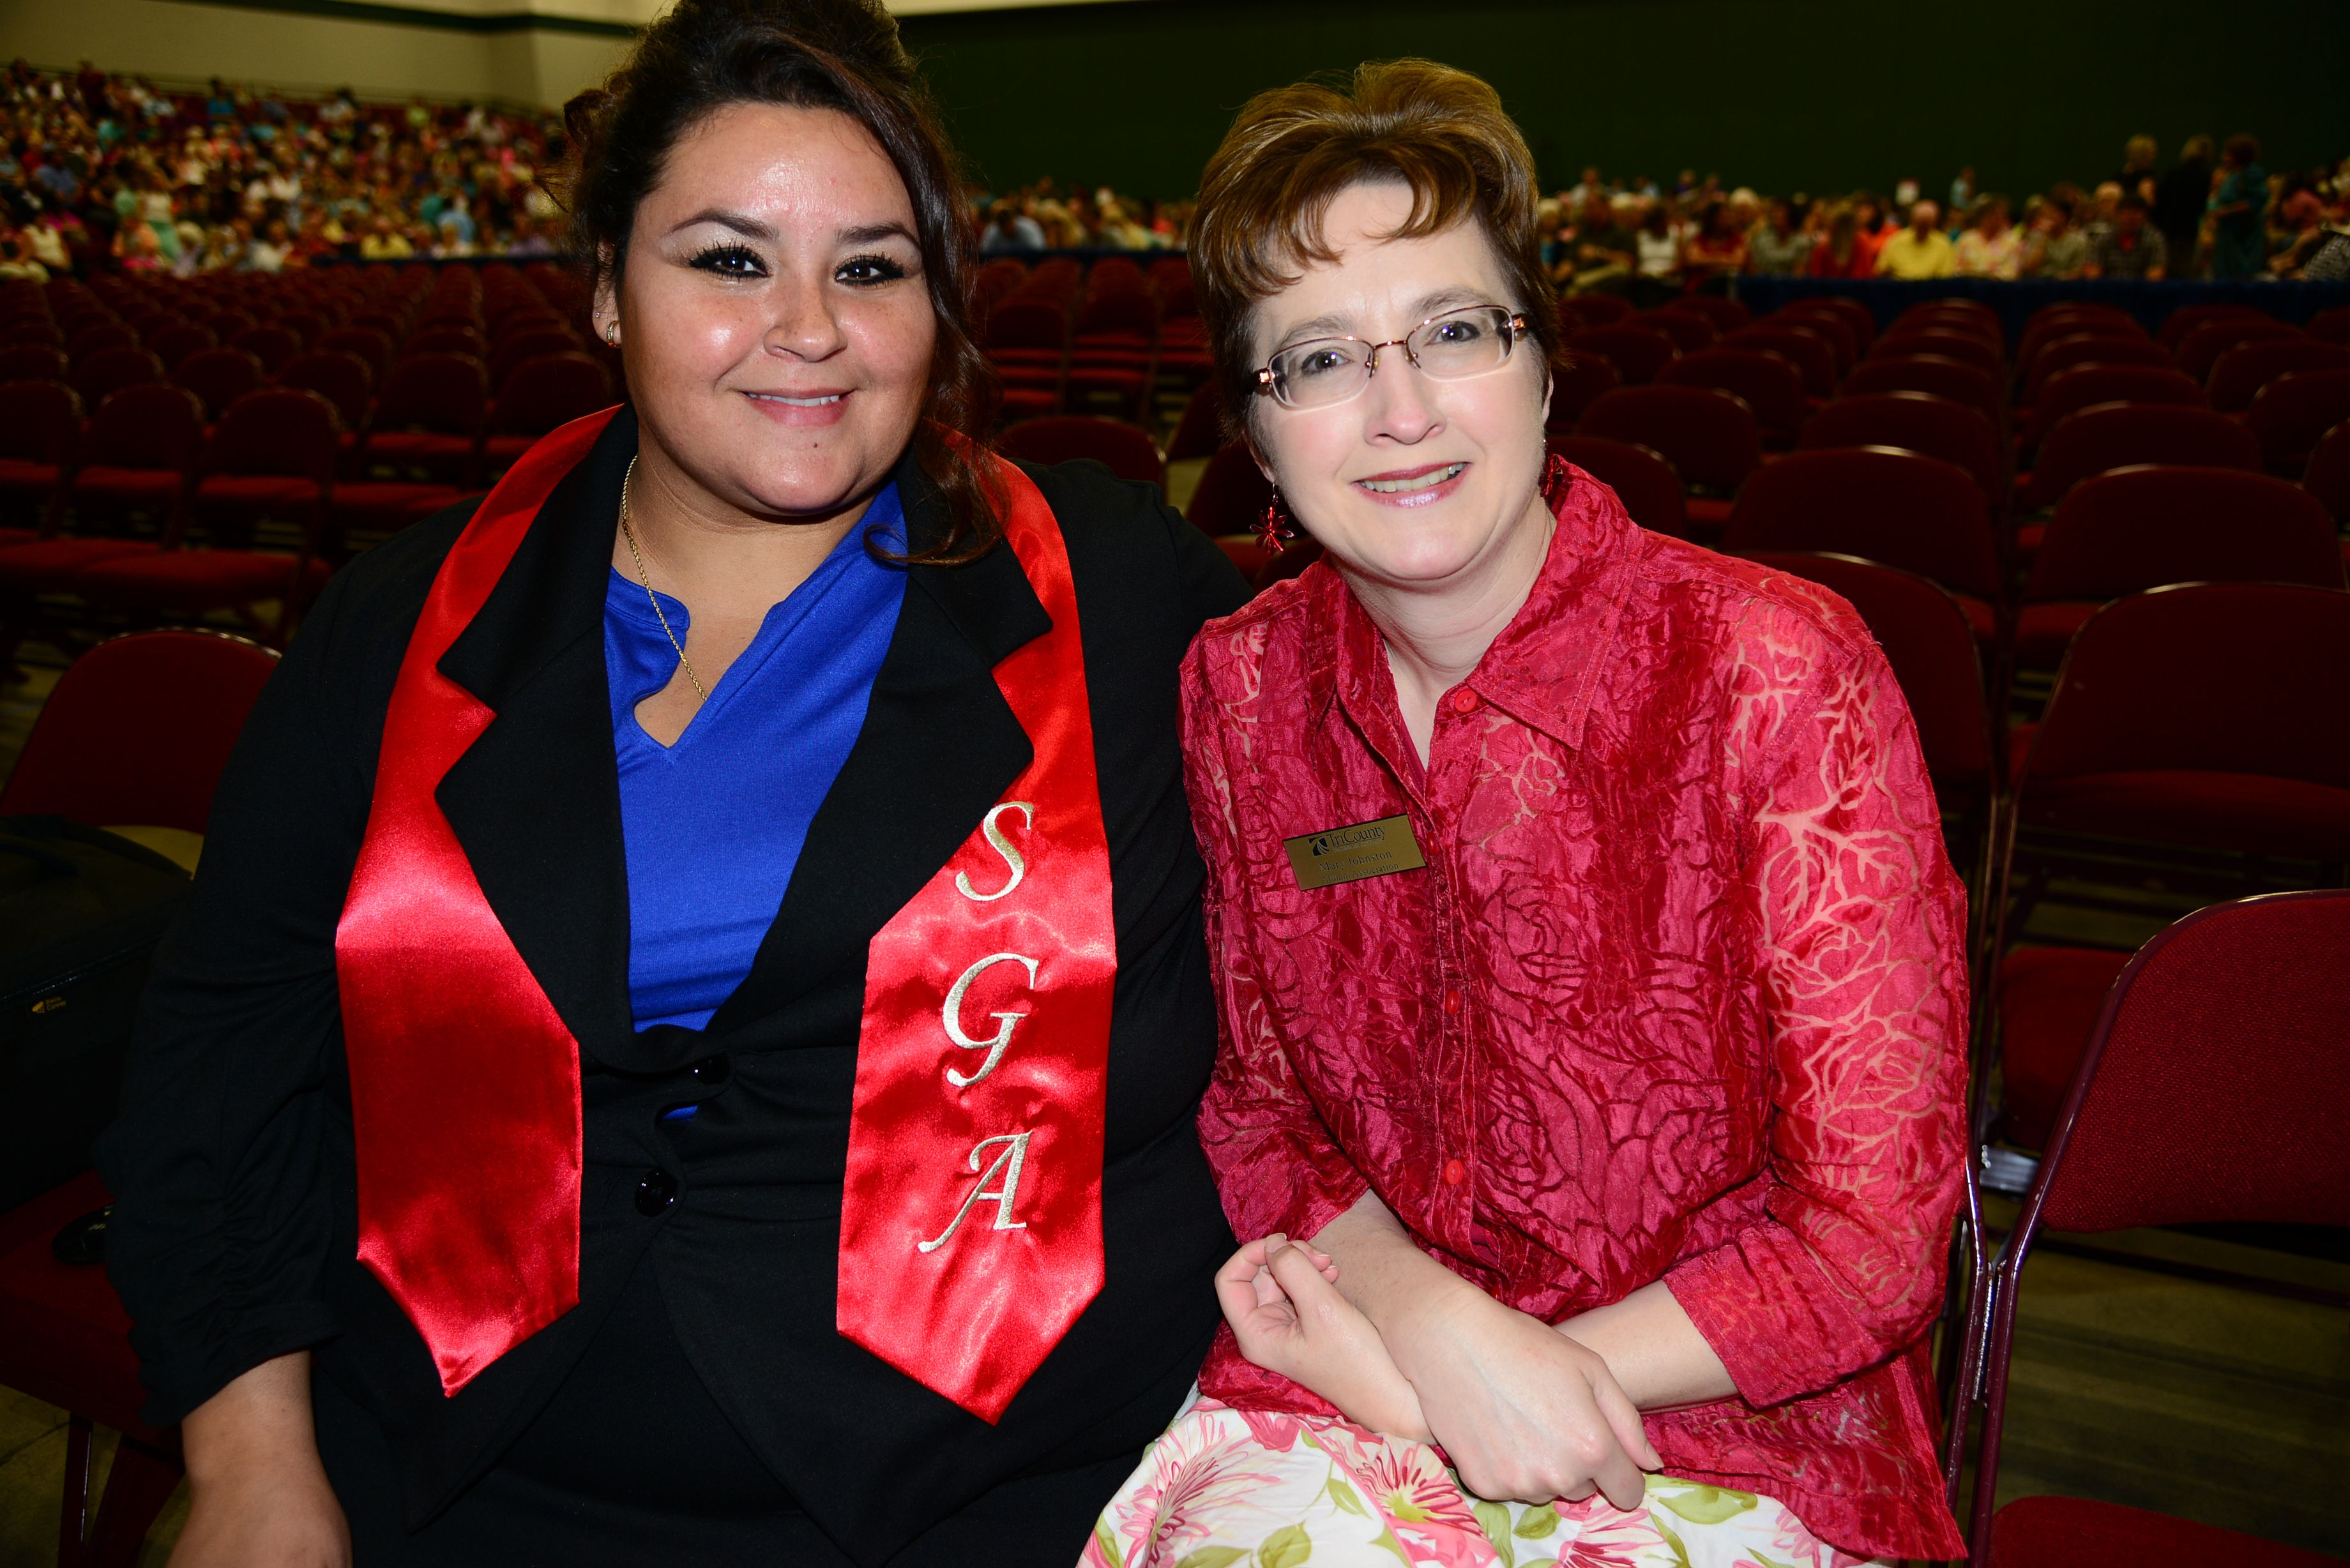 SGA President Melina Rodelo and Alumni Relations Director Mary Johnston cheer on grads before the ceremony.